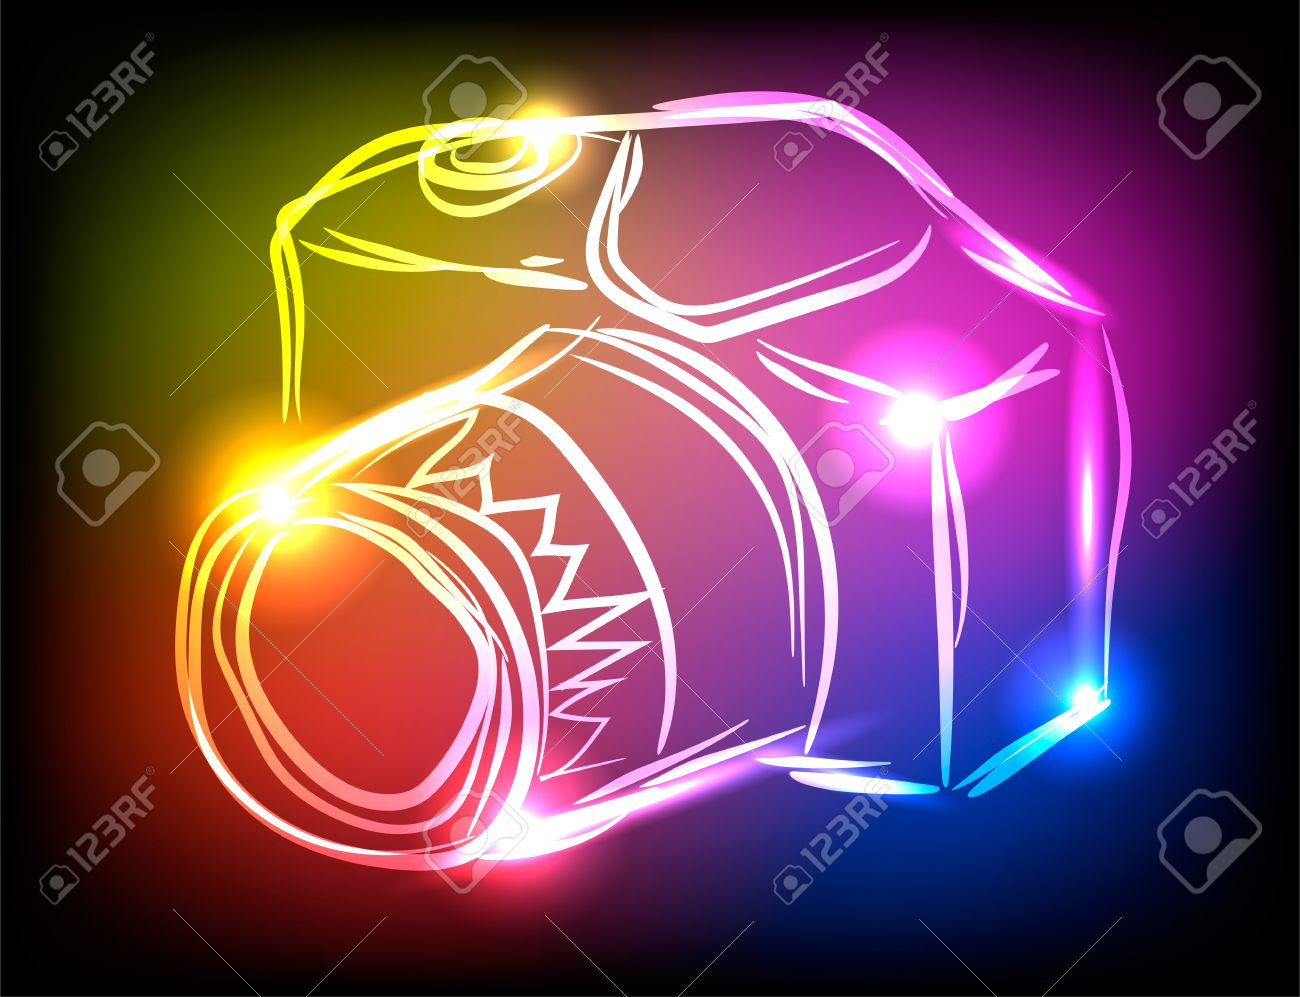 Colorful Photo Camera With Neon Lights On Black Background Stock Vector    61576971